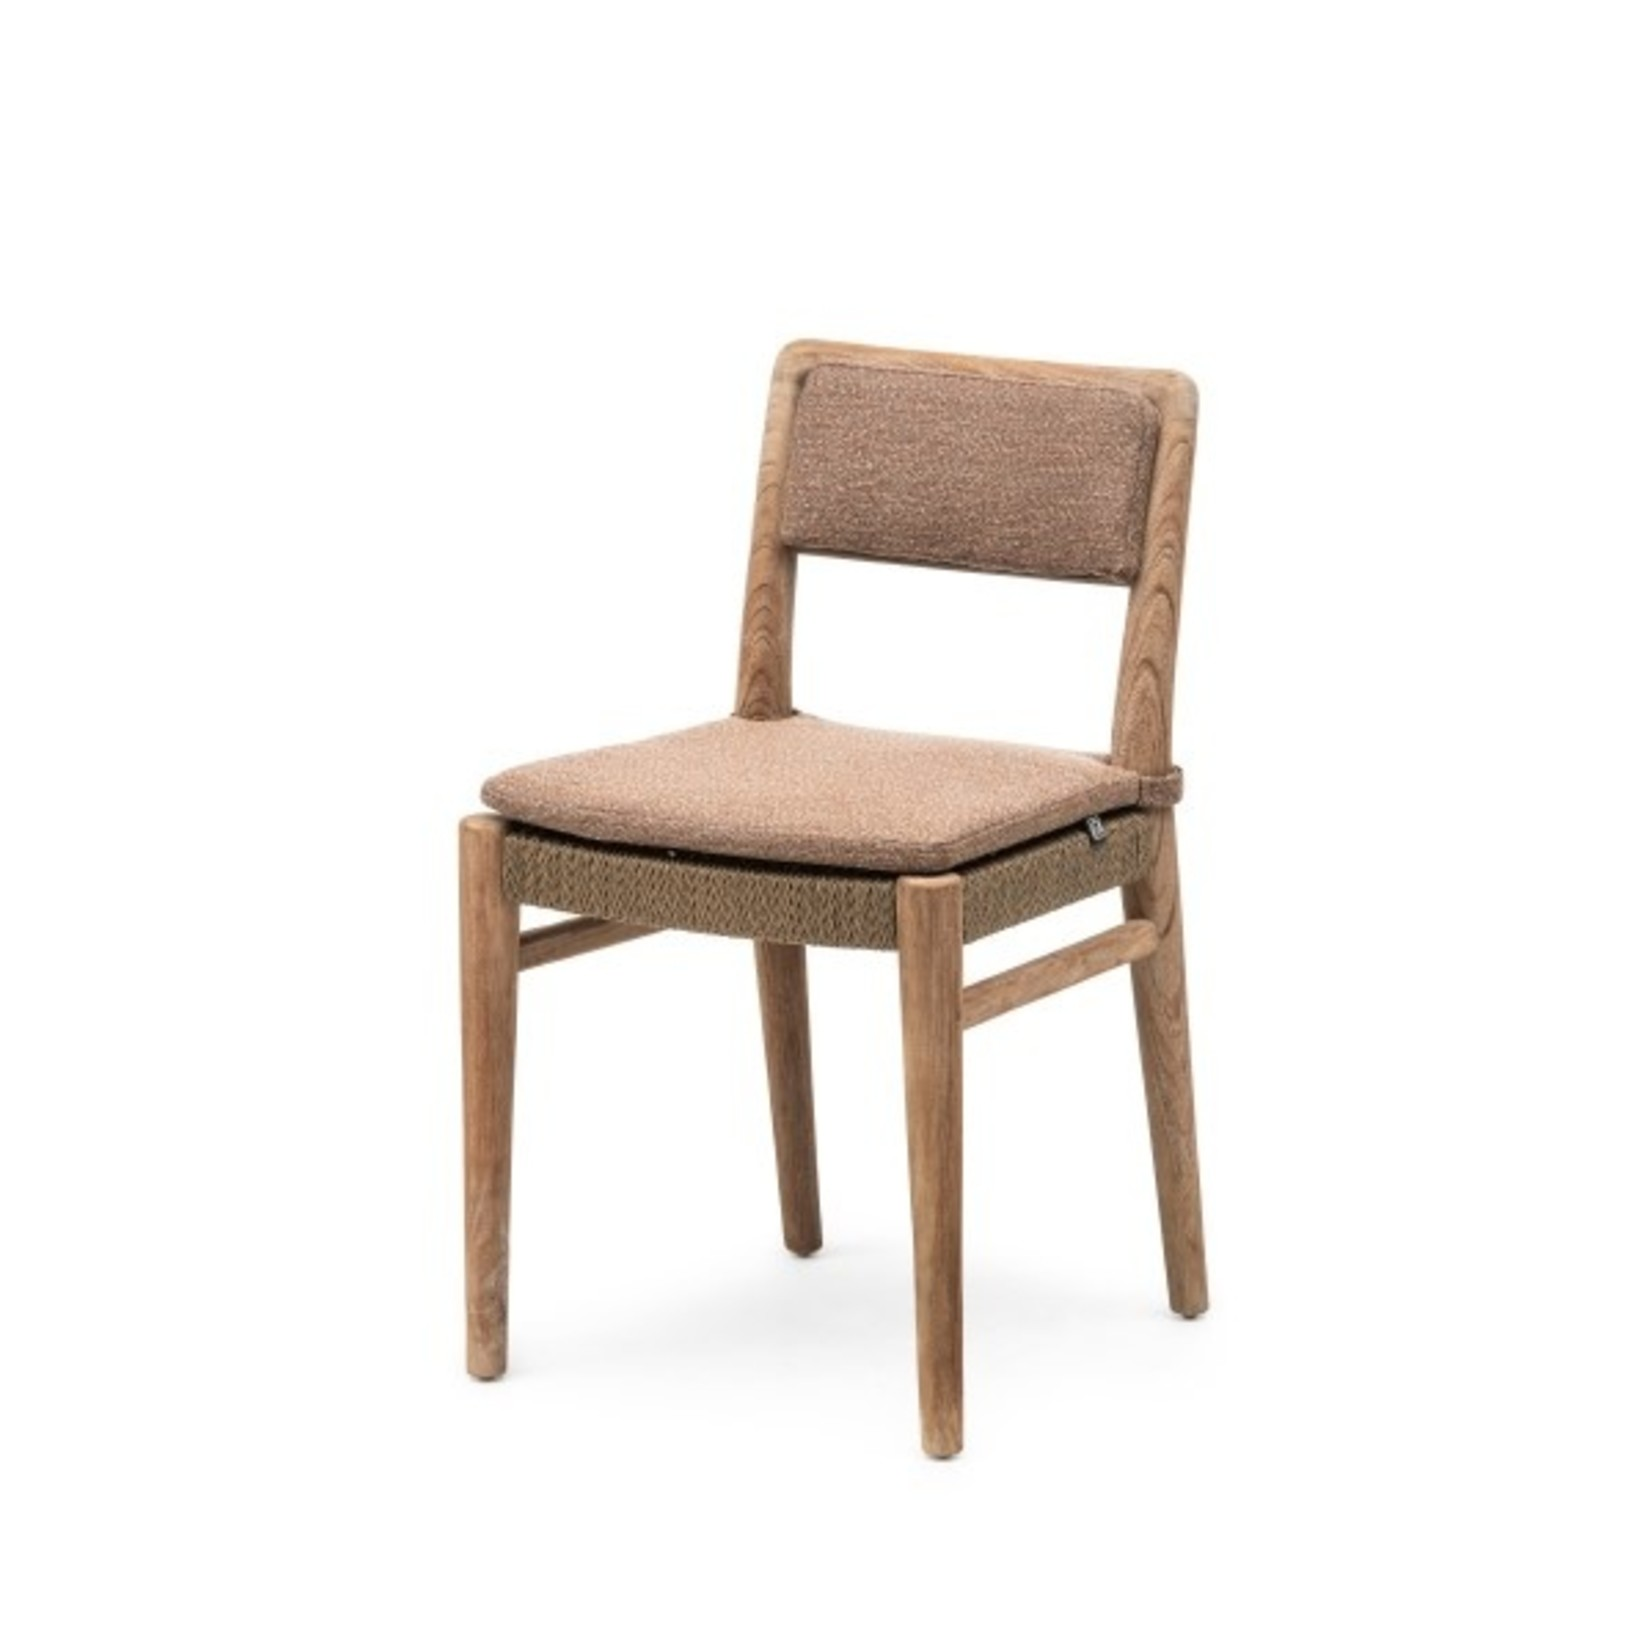 Gommaire Chair Jared | Teak Natural Grey / PE Wicker Antique Weed